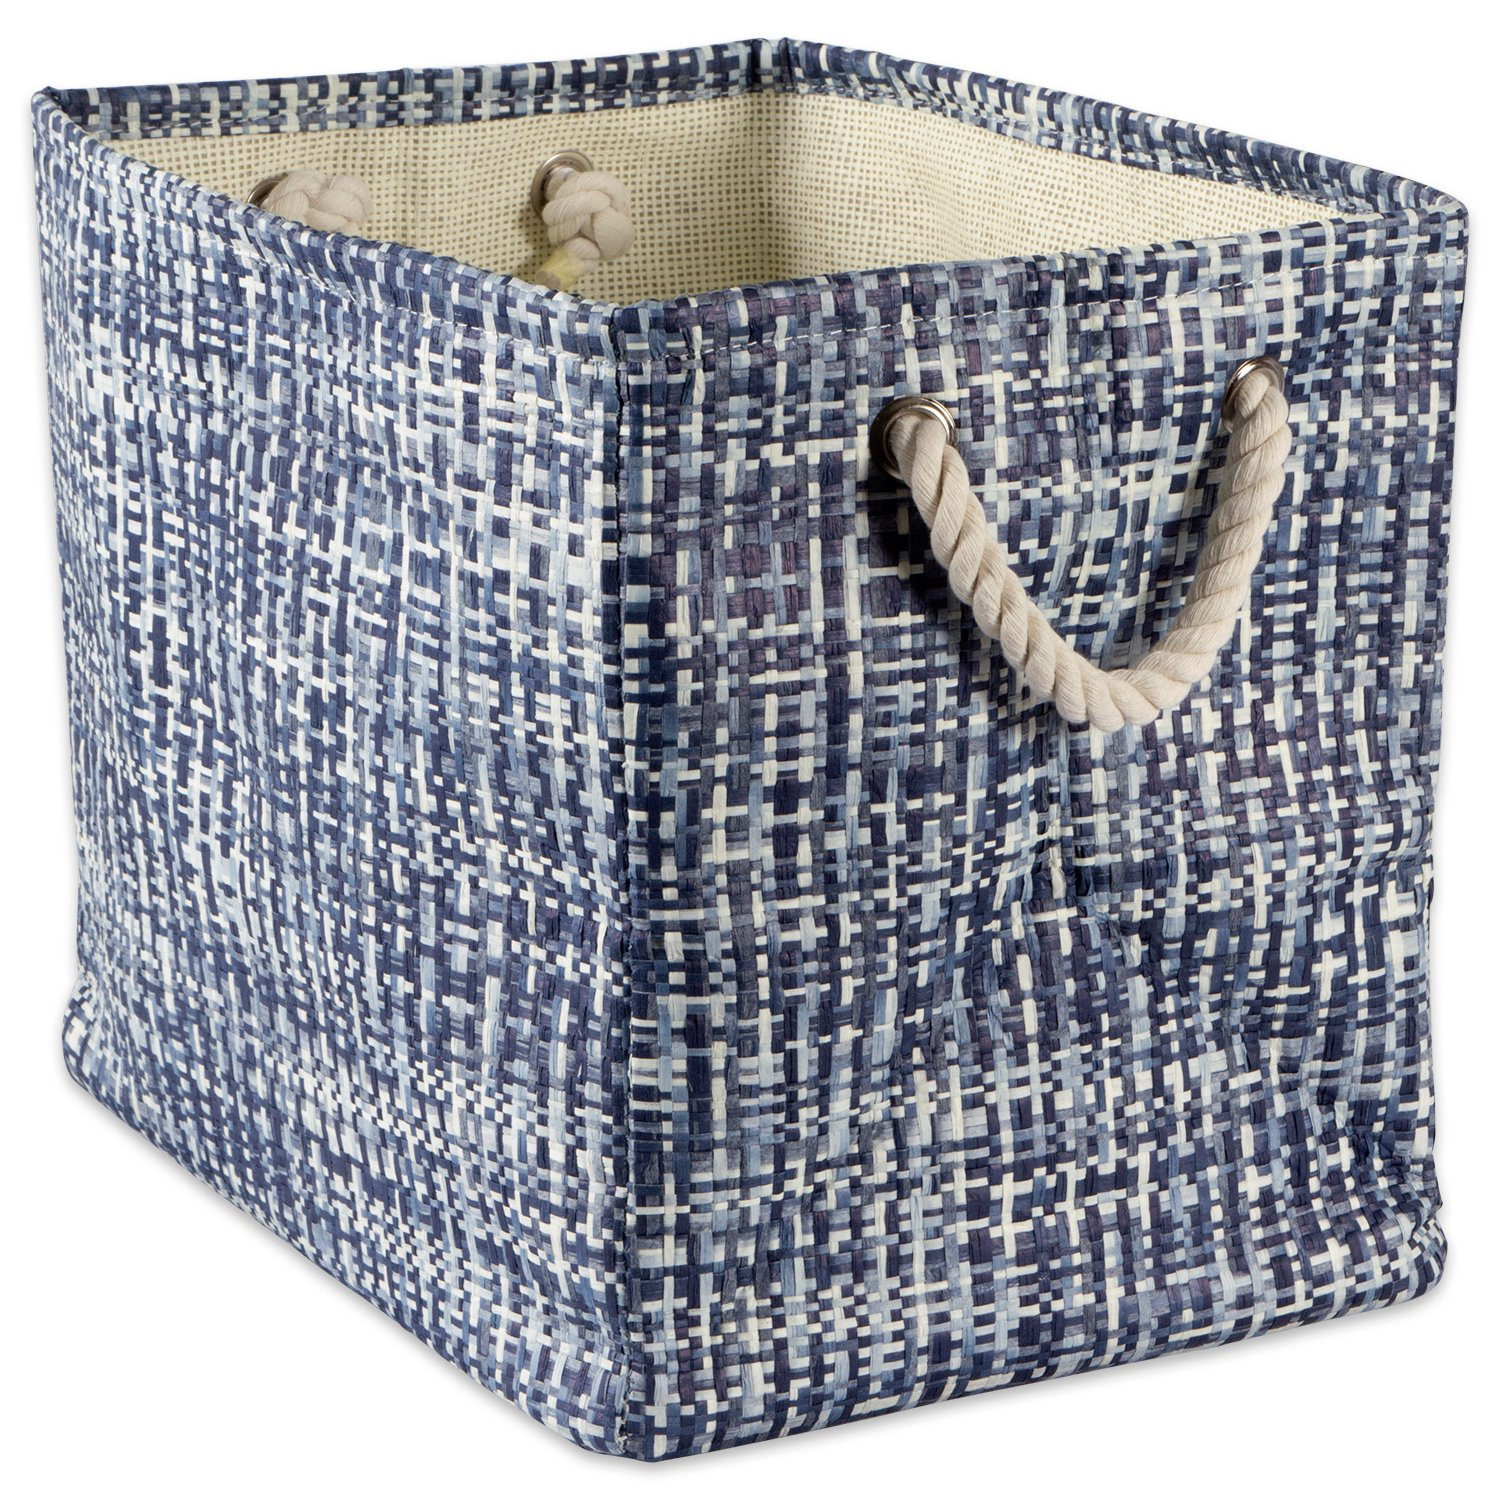 "DII Oversize Woven Paper Storage Basket or Bin (Medium - 15x10x12""), Aqua Tweed CAMZ10138"